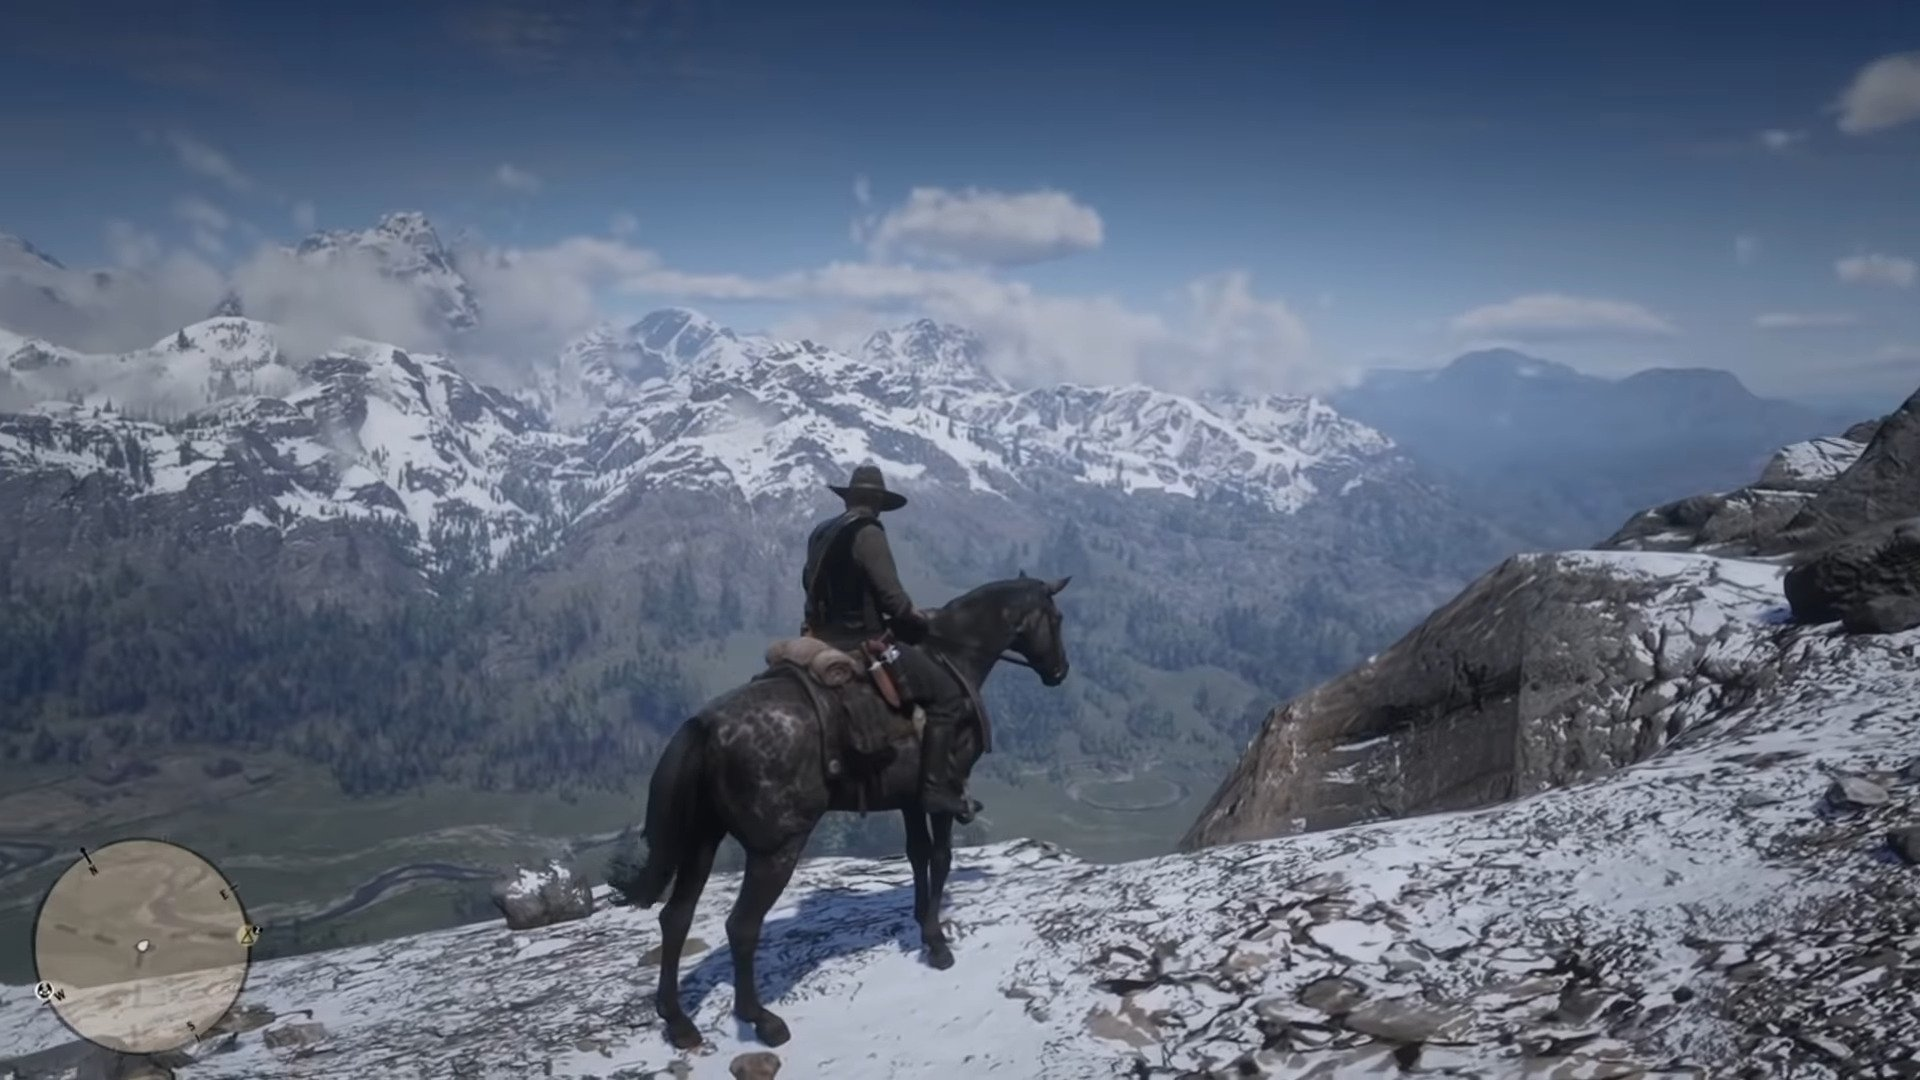 Red Dead Redemption 2: A Guide To Unlocking Fast Travel, RDR2's Most Well-Kept Secret